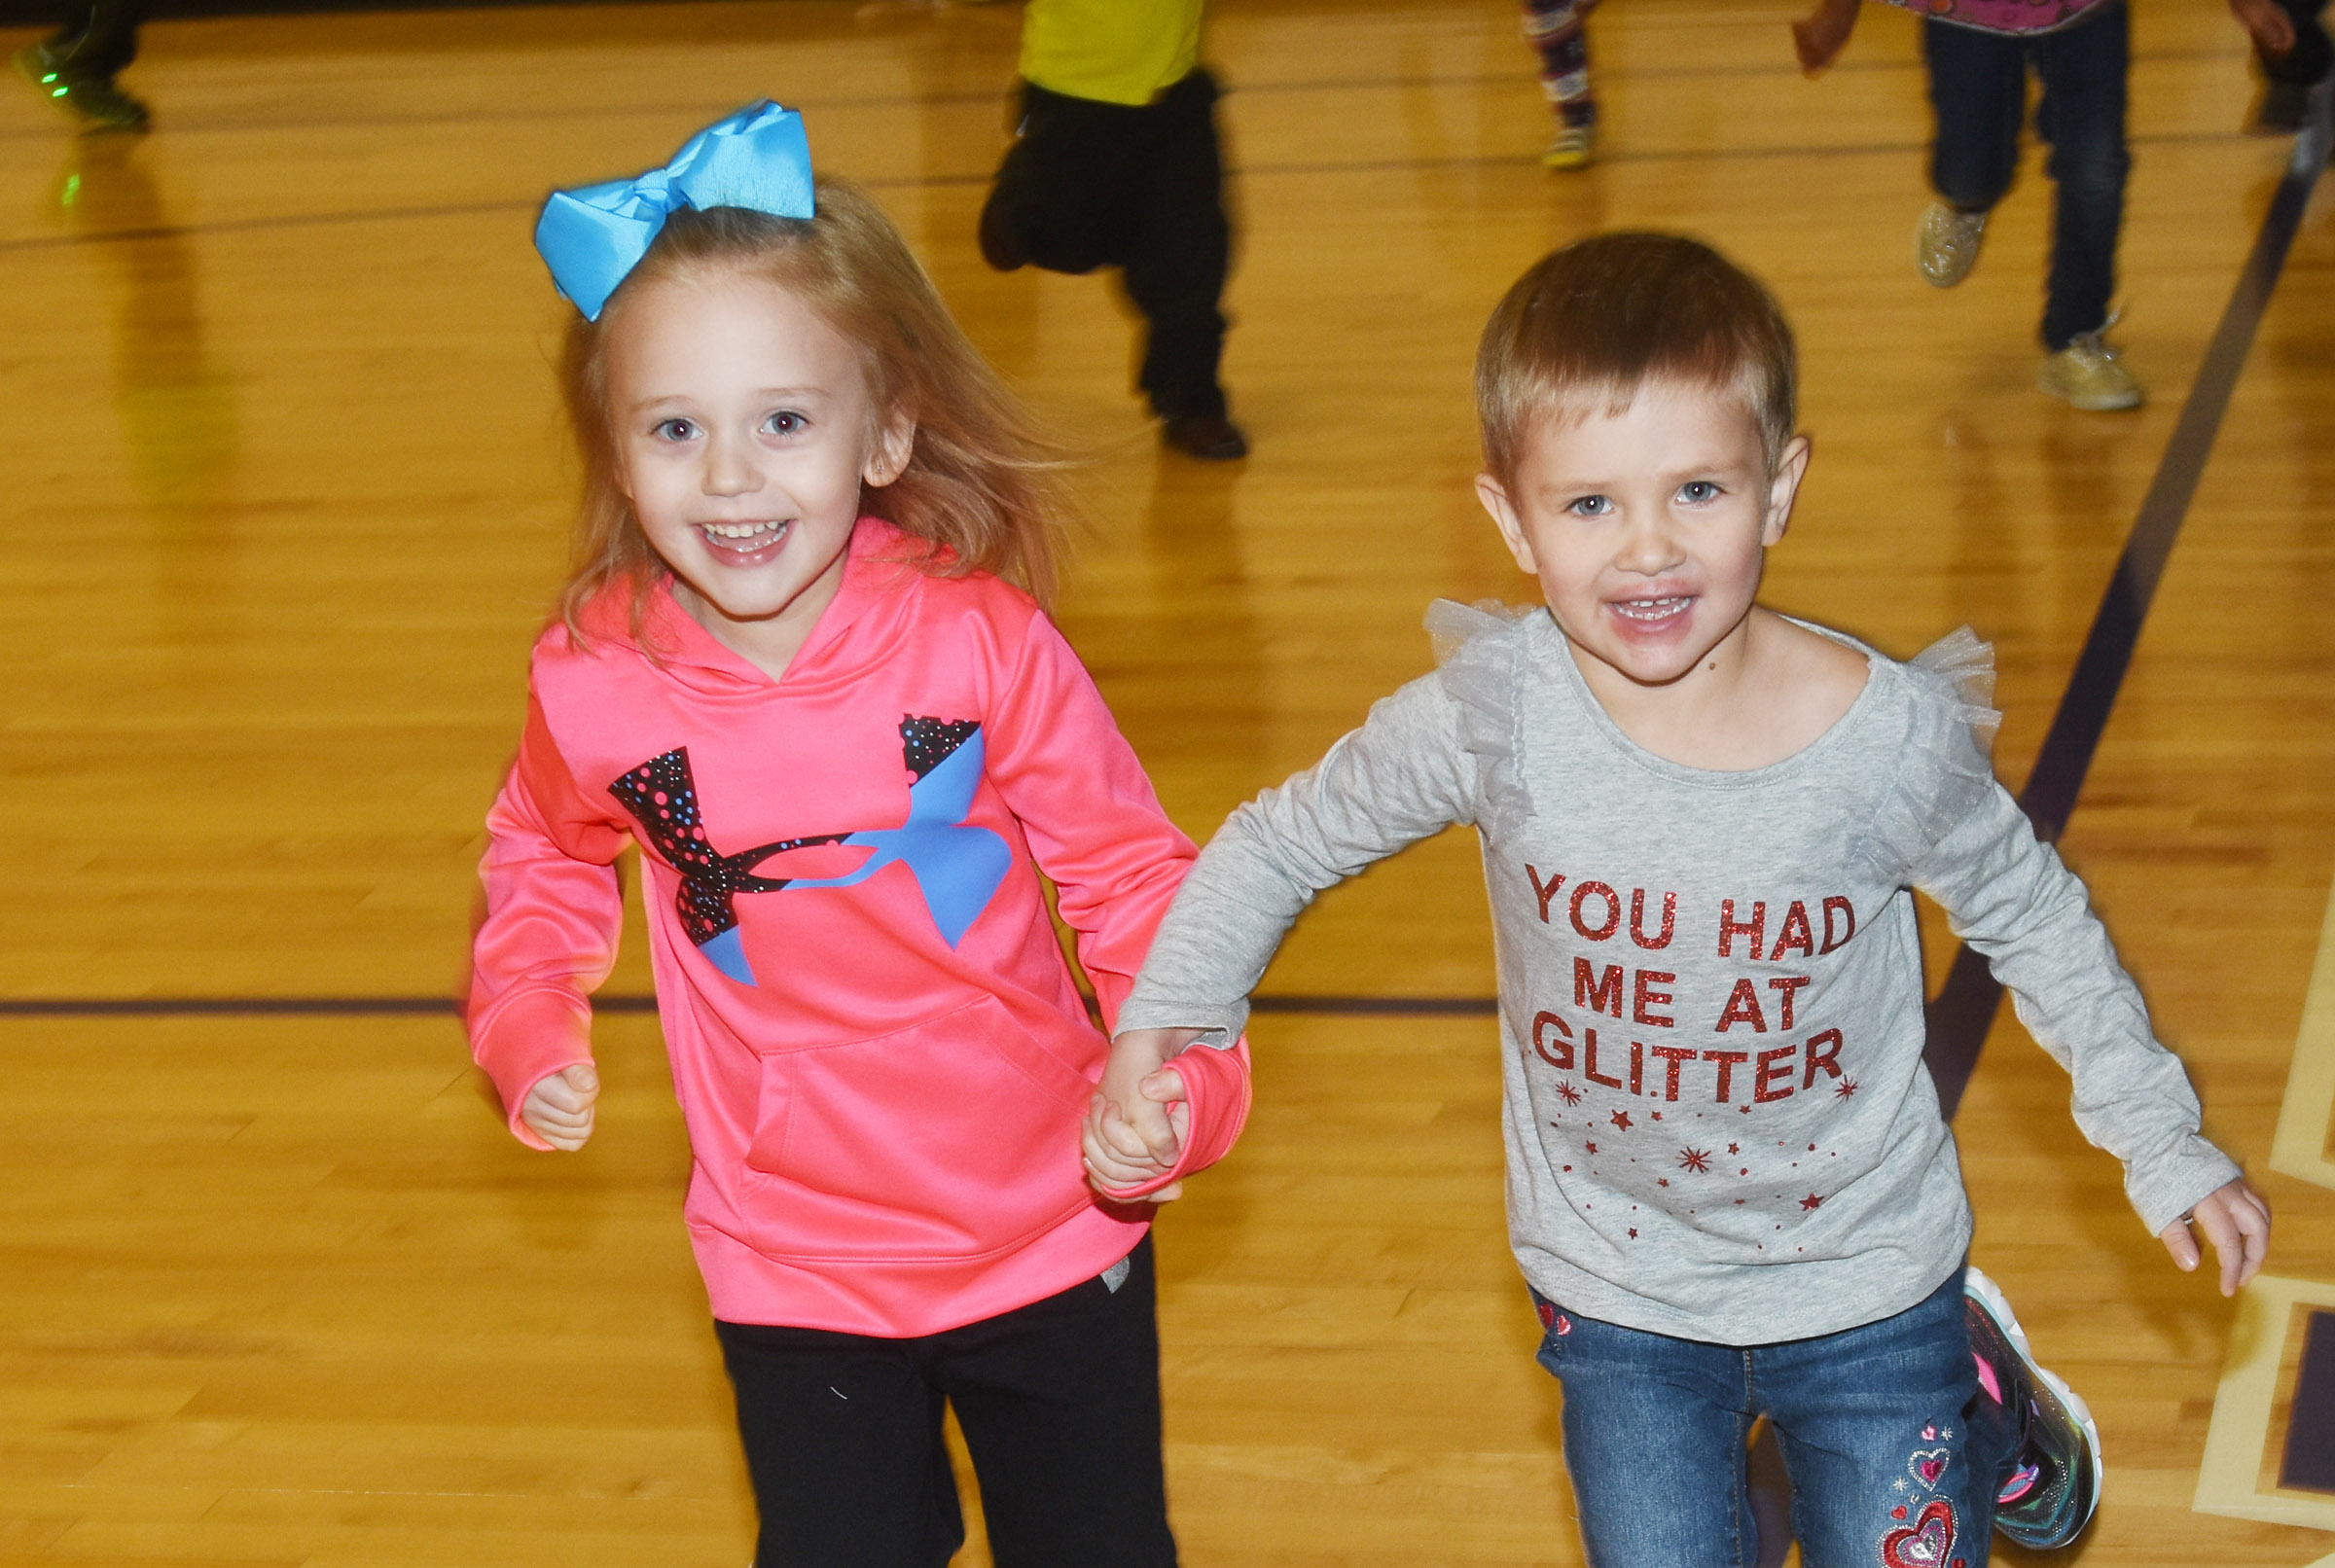 CES preschool students Kylie Thompson, at left, and Elliana Morton run together in the gym.